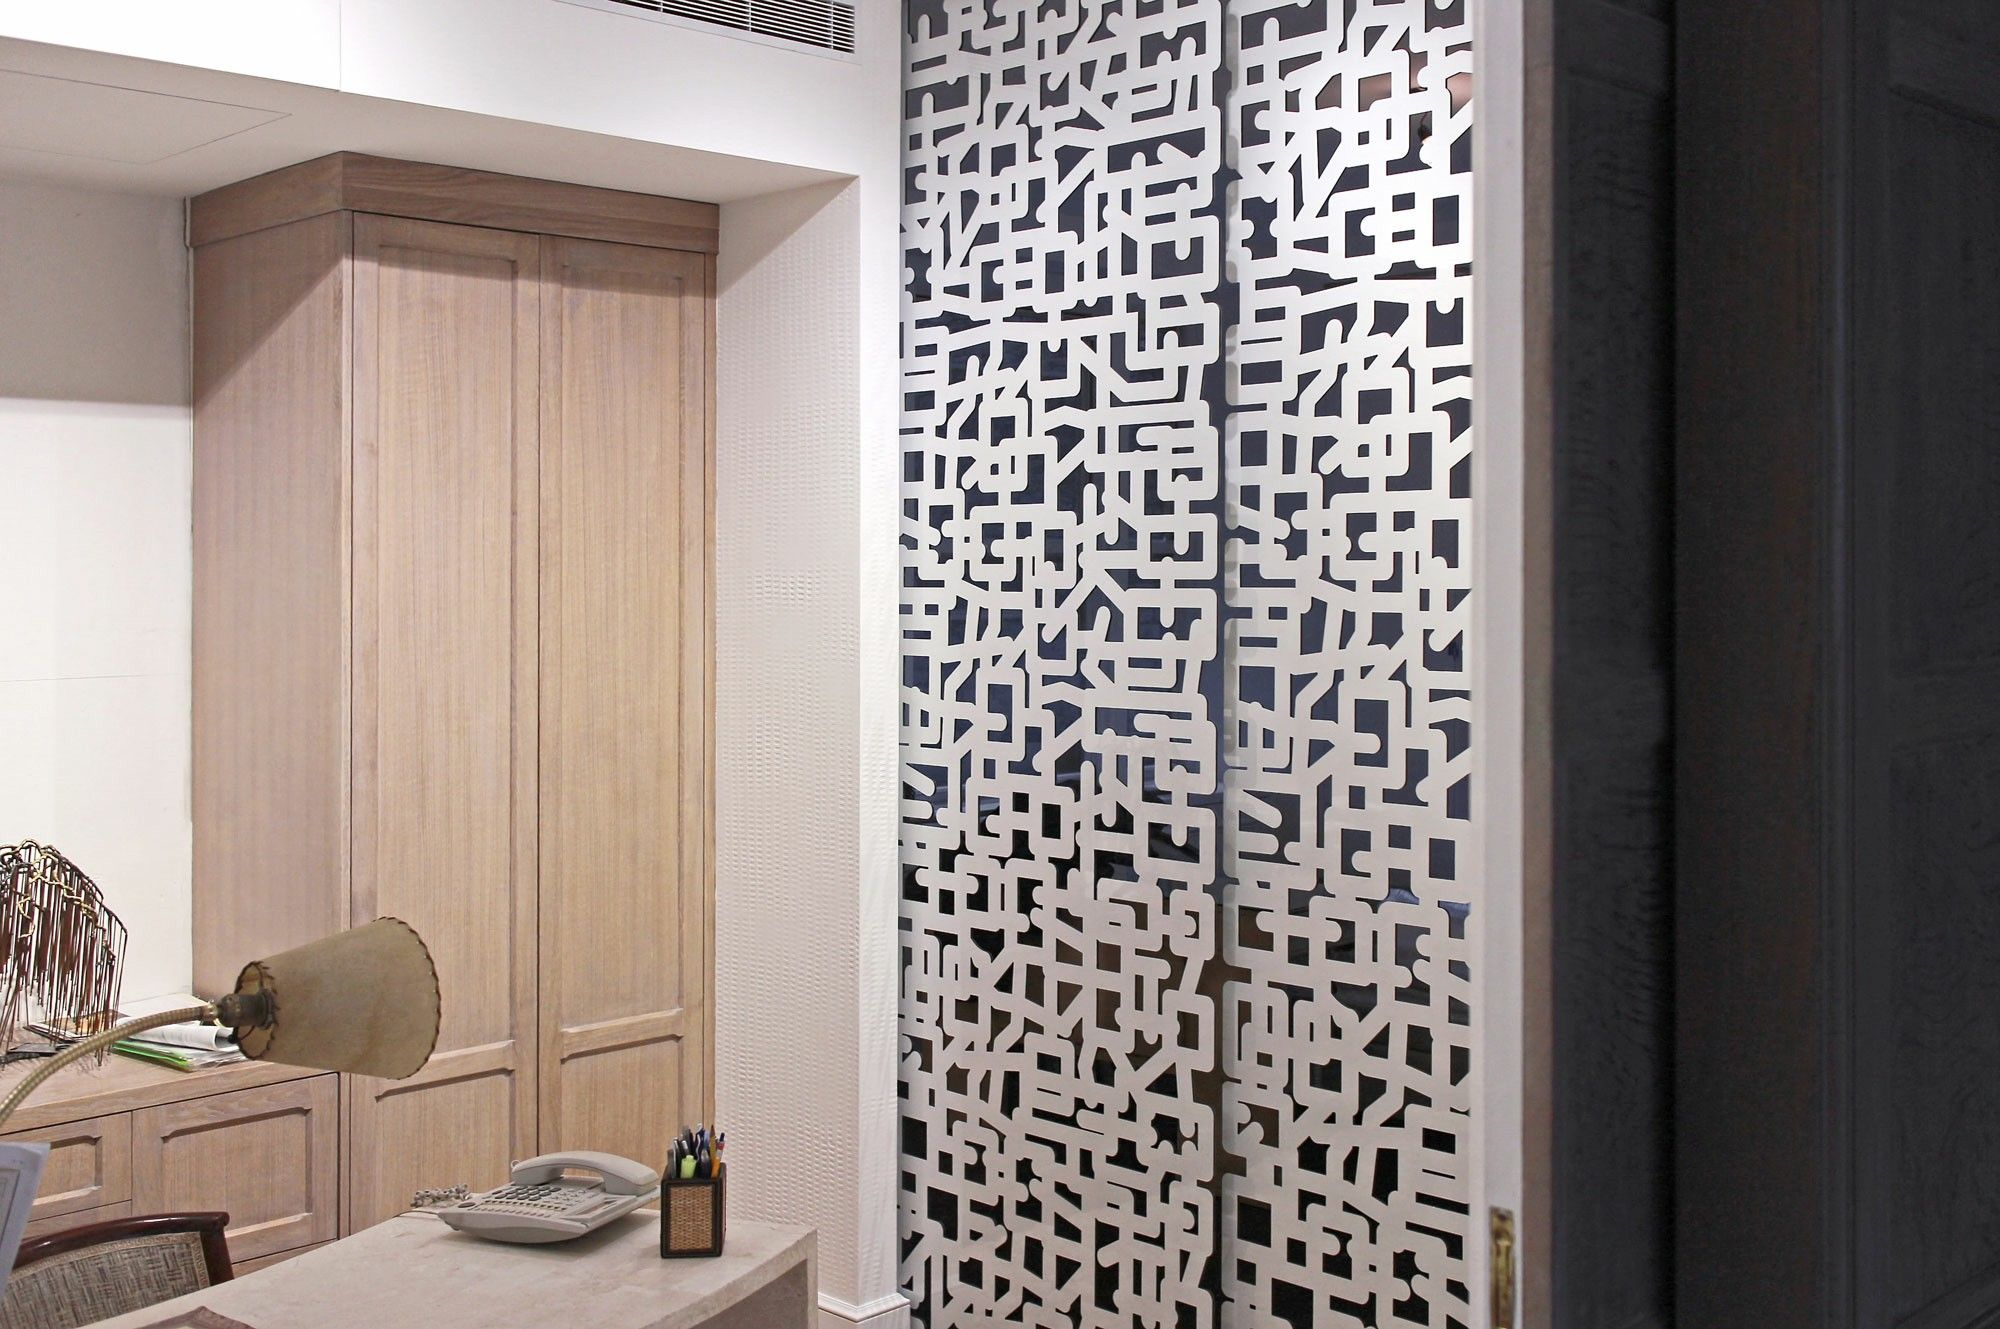 size dividers interior inspiring of divider with trendy decorative temporary home full awesome innovation room decor uncategorized in ideas